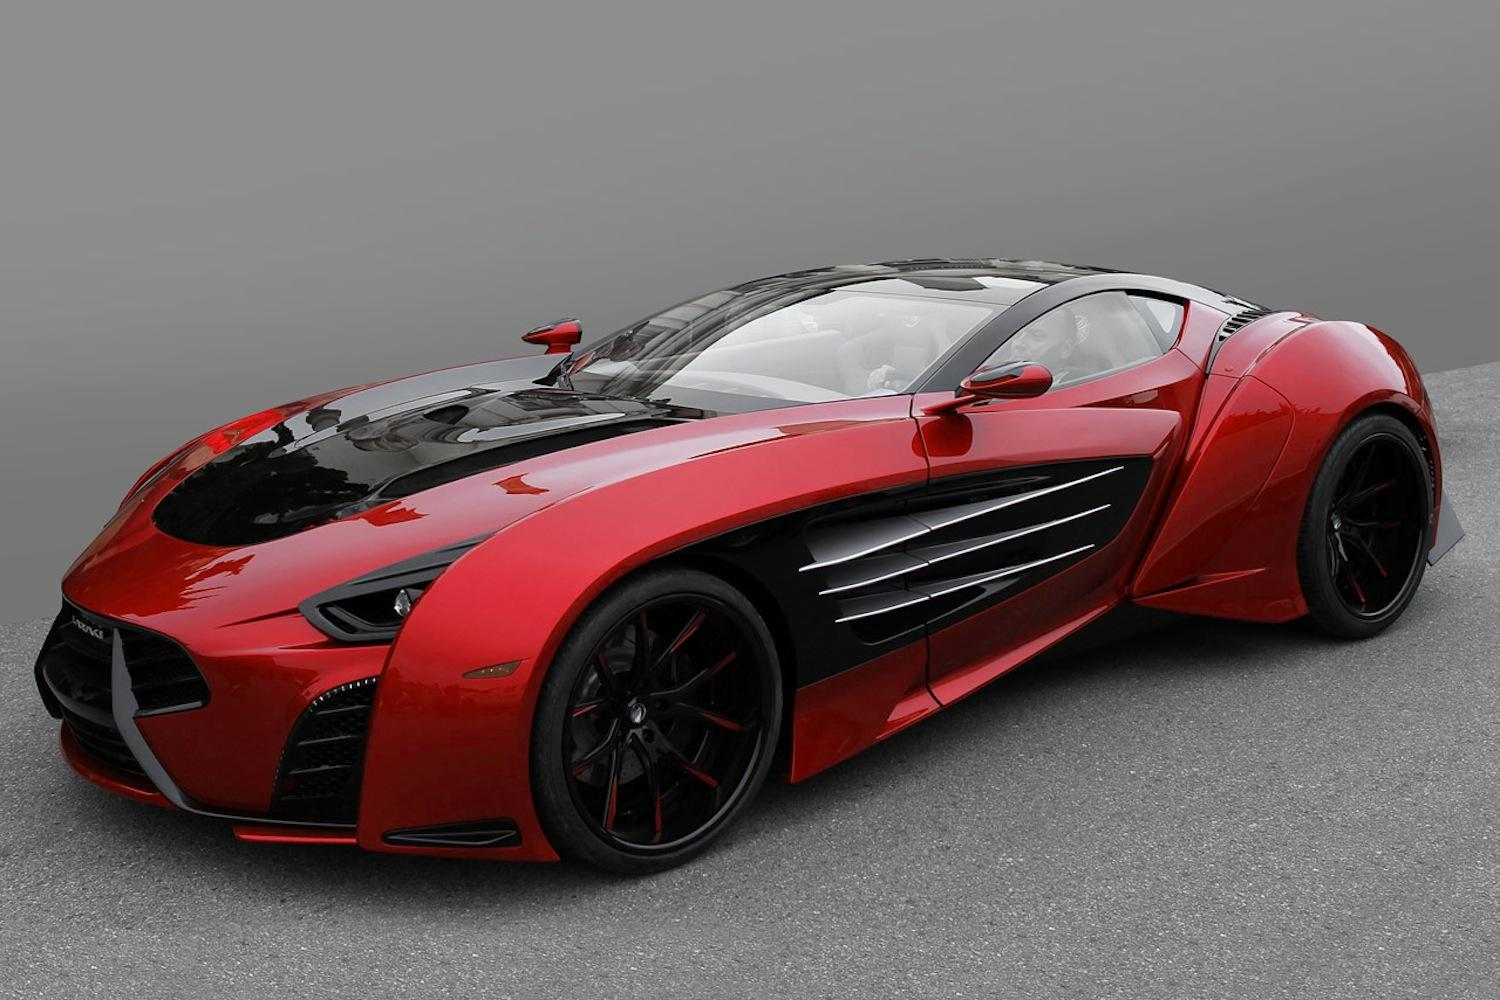 The Laraki Epitome Concept Car Looks Like The Result Of A